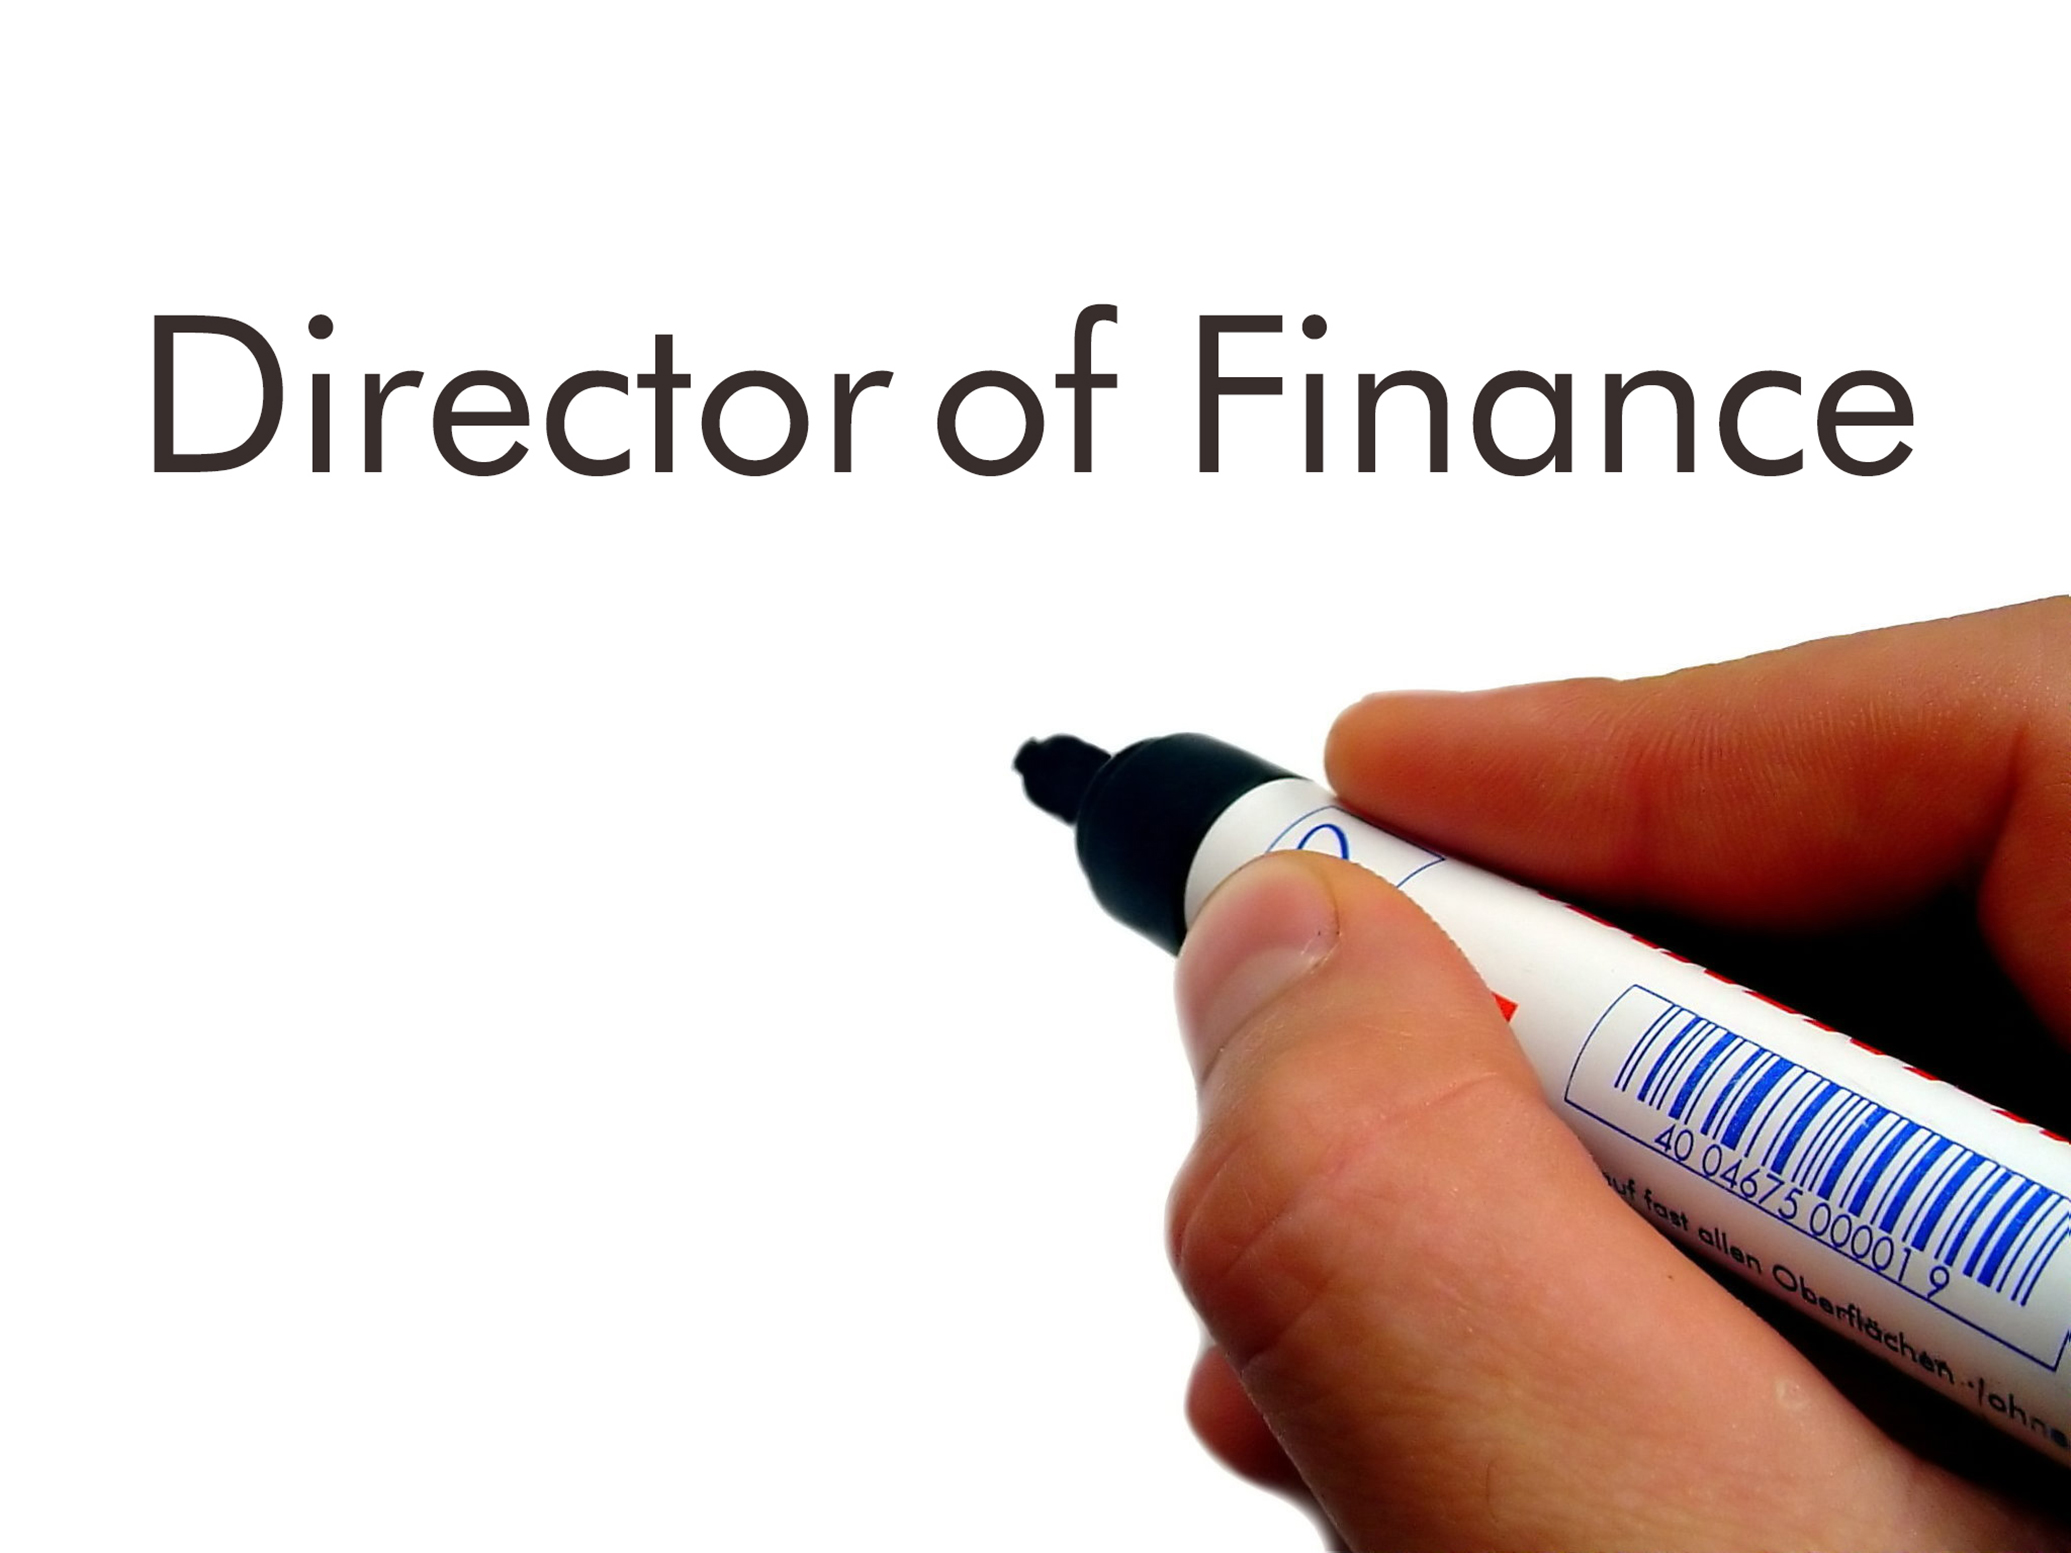 write a director of finance job description